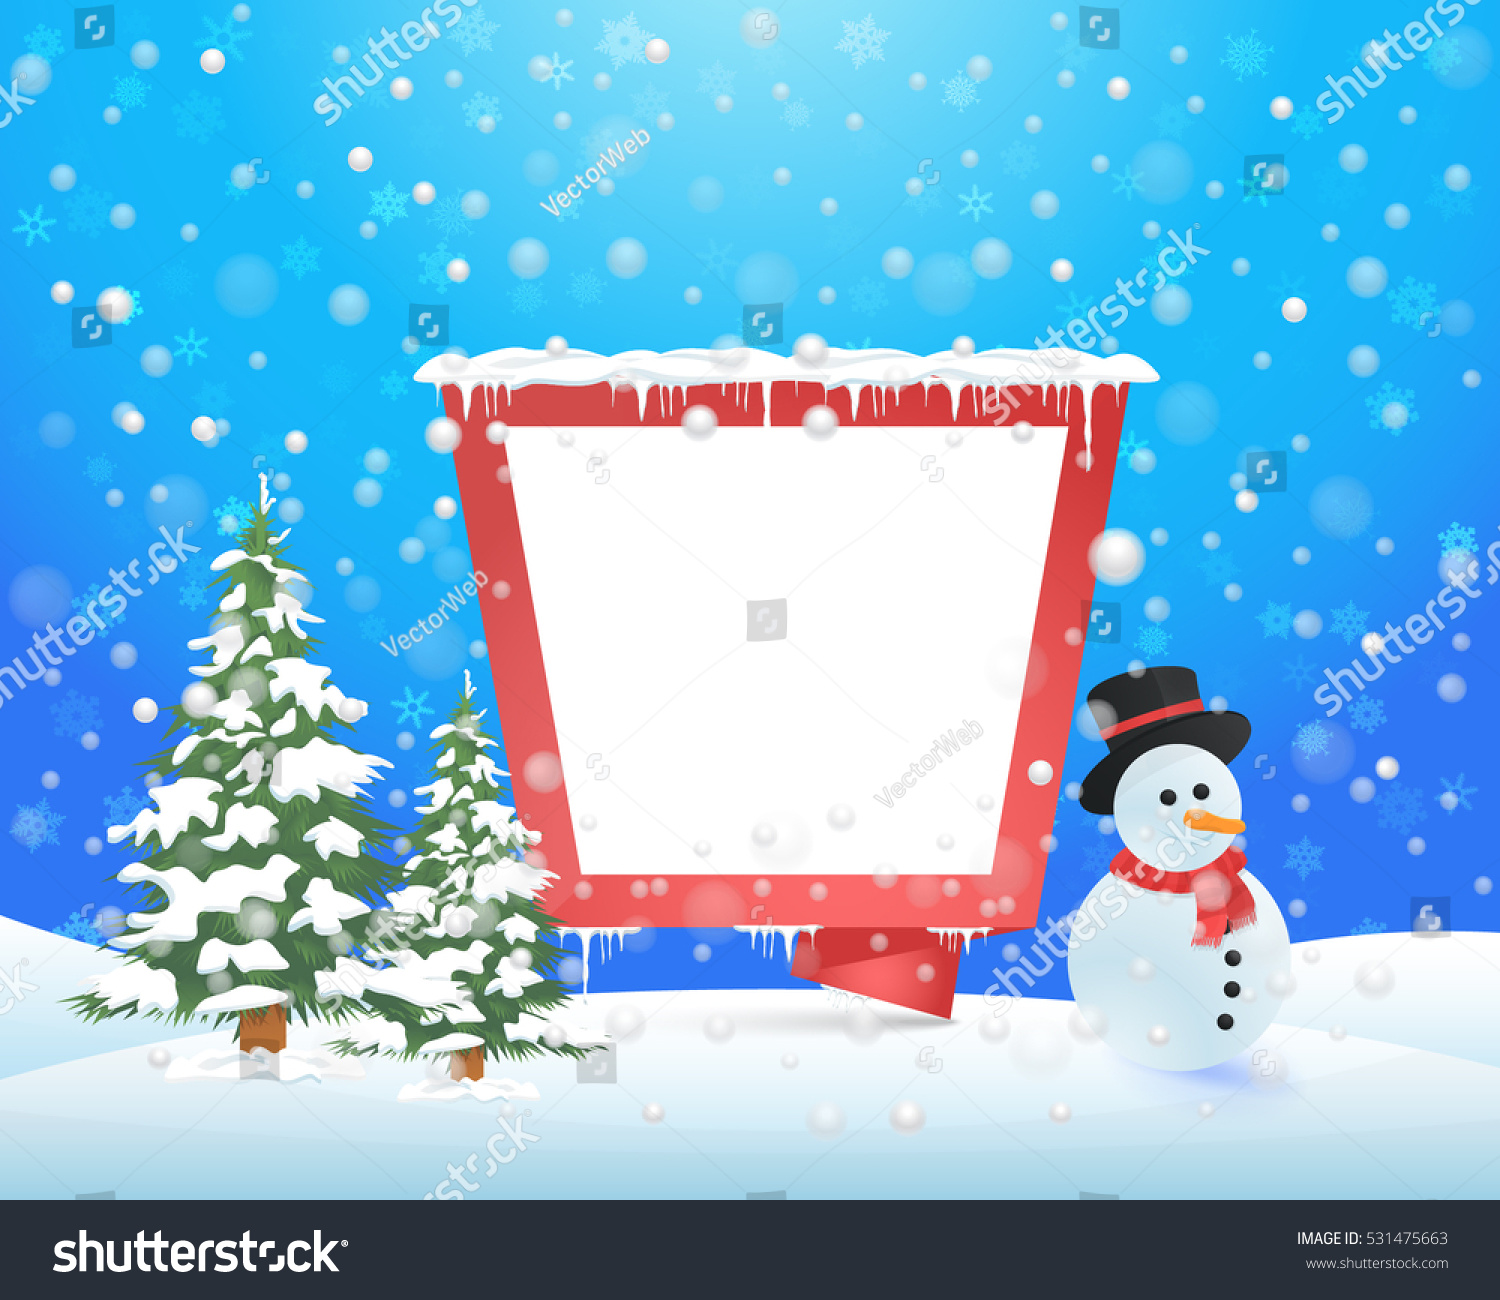 christmas landscape winter background design snowflakes stock